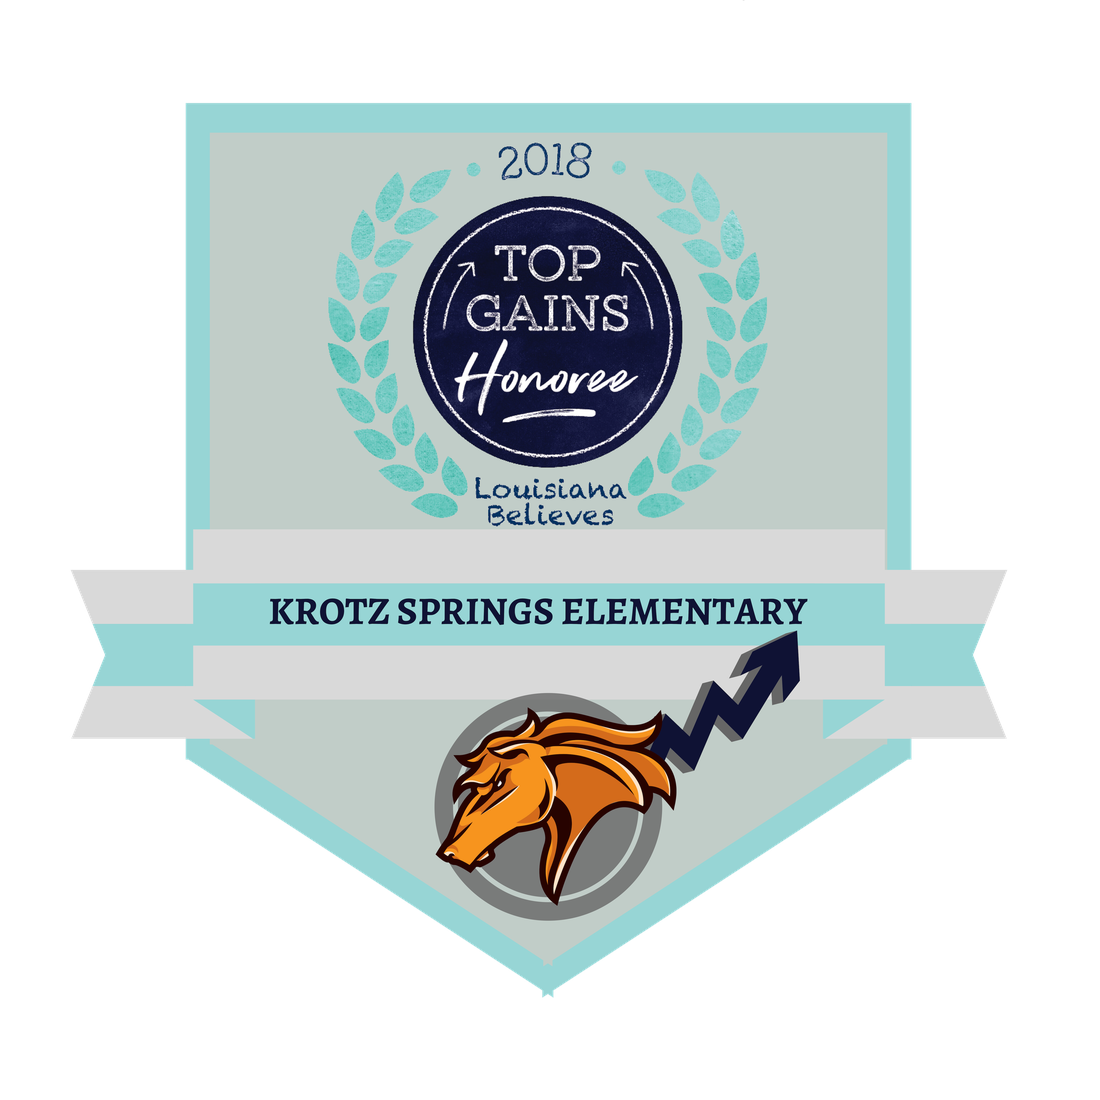 Top Gains Honoree Logo